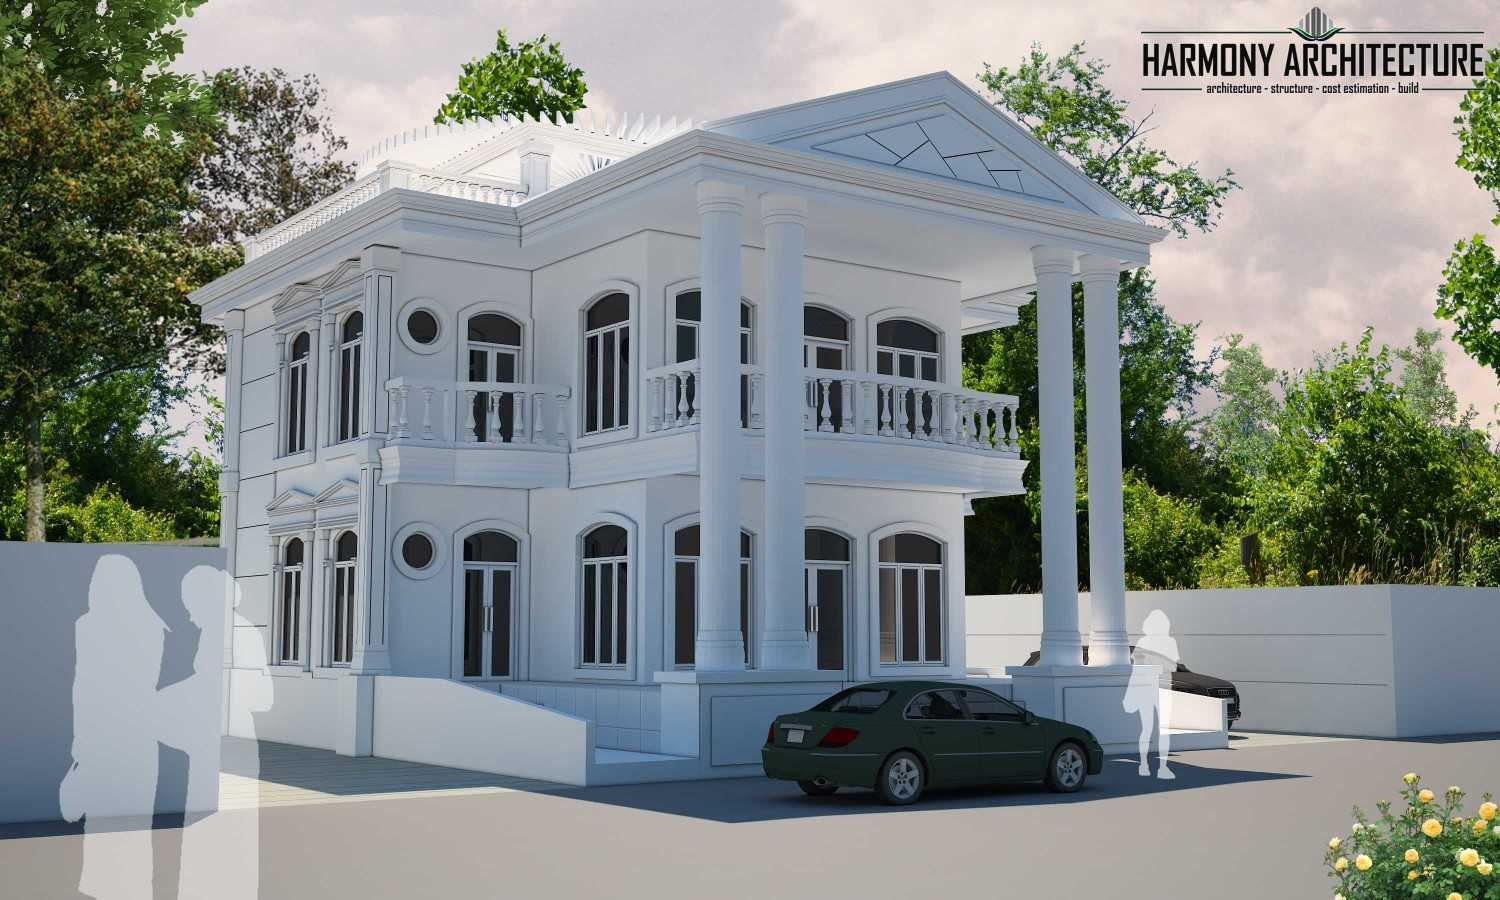 Harmony Architecture White House Of Timor Timor-Leste Timor-Leste Harmony-Architecture-White-House-Of-Timor Classic 52516